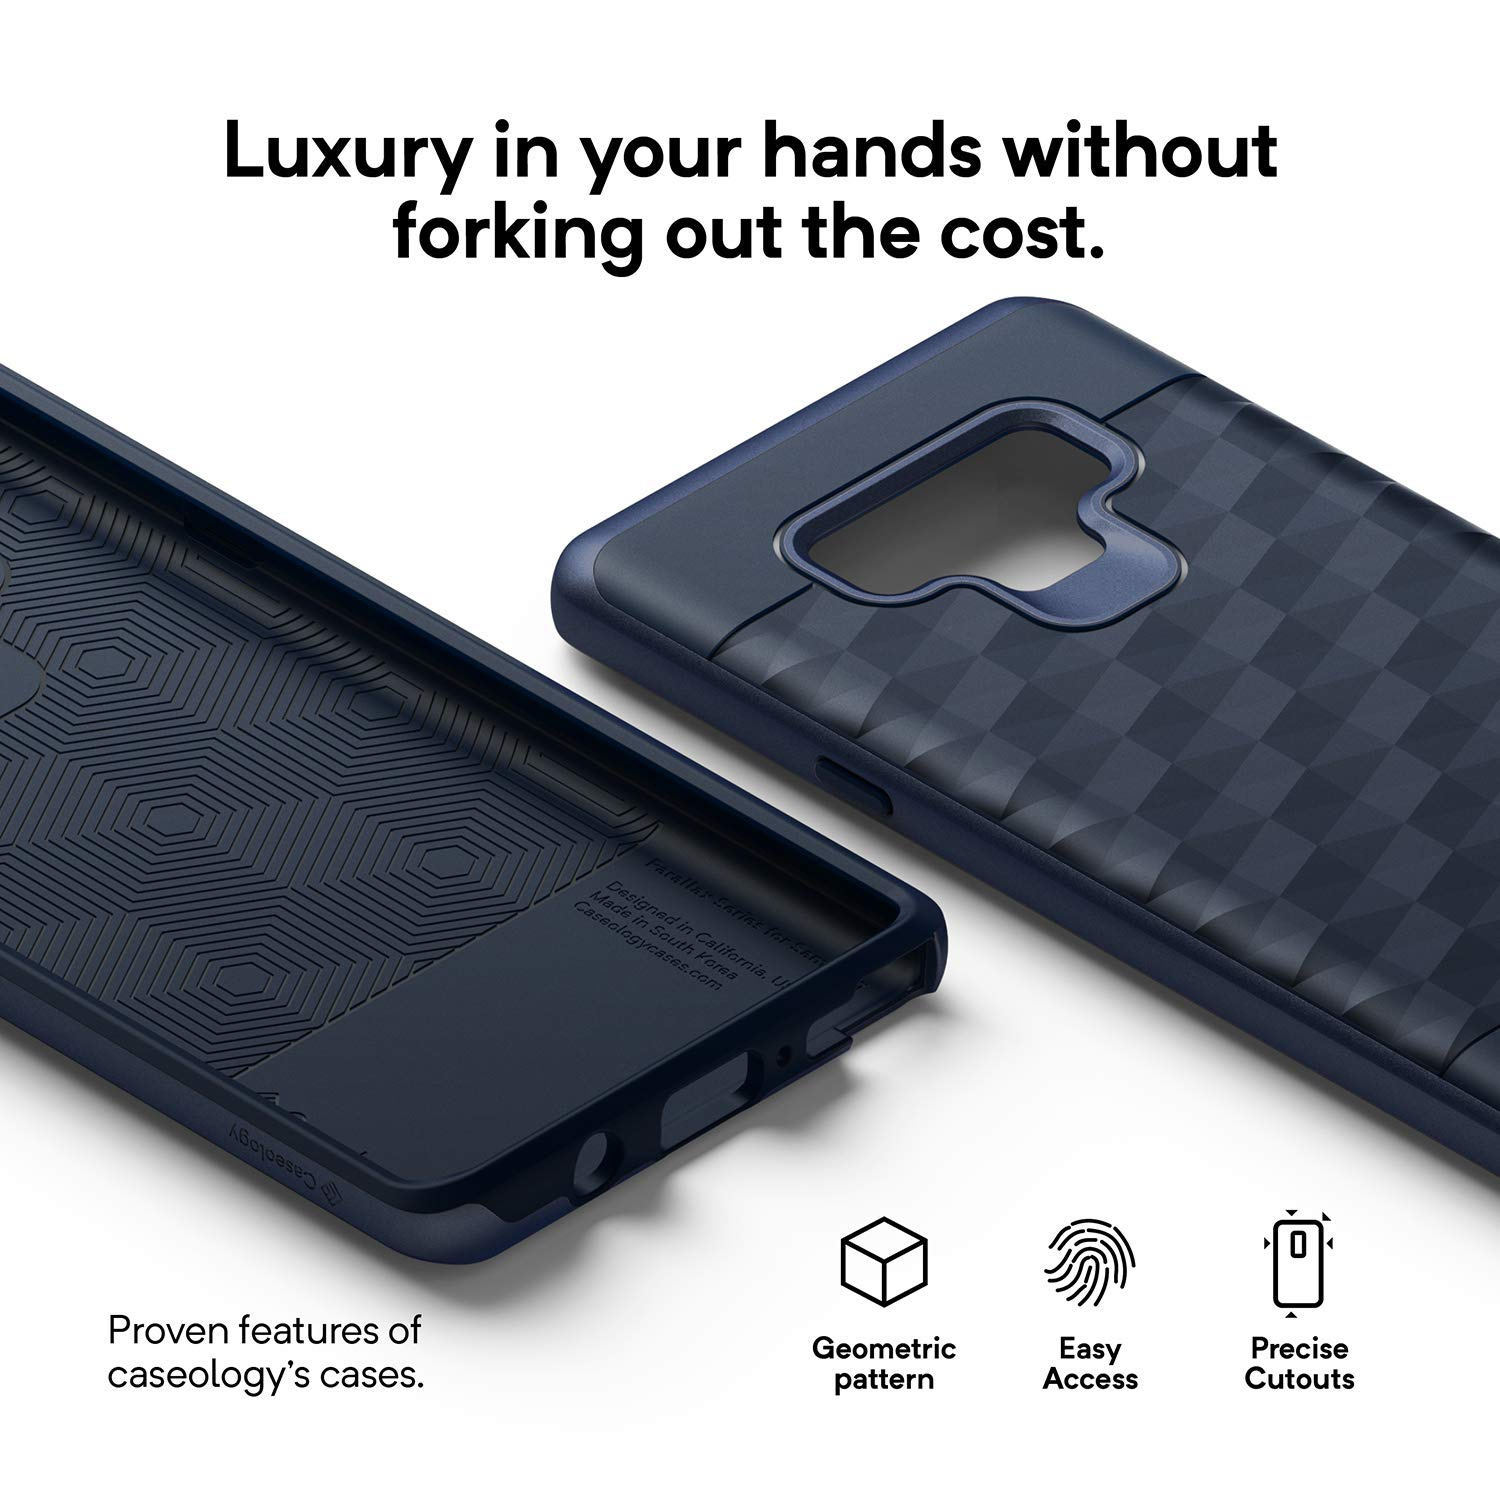 brand new 5c765 f8968 Caseology Parallax Series Case for Galaxy Note 9 - Slim Protective Secure  Grip with Geometric Design Case for Samsung Galaxy Note 9 (2018) - Ocean ...